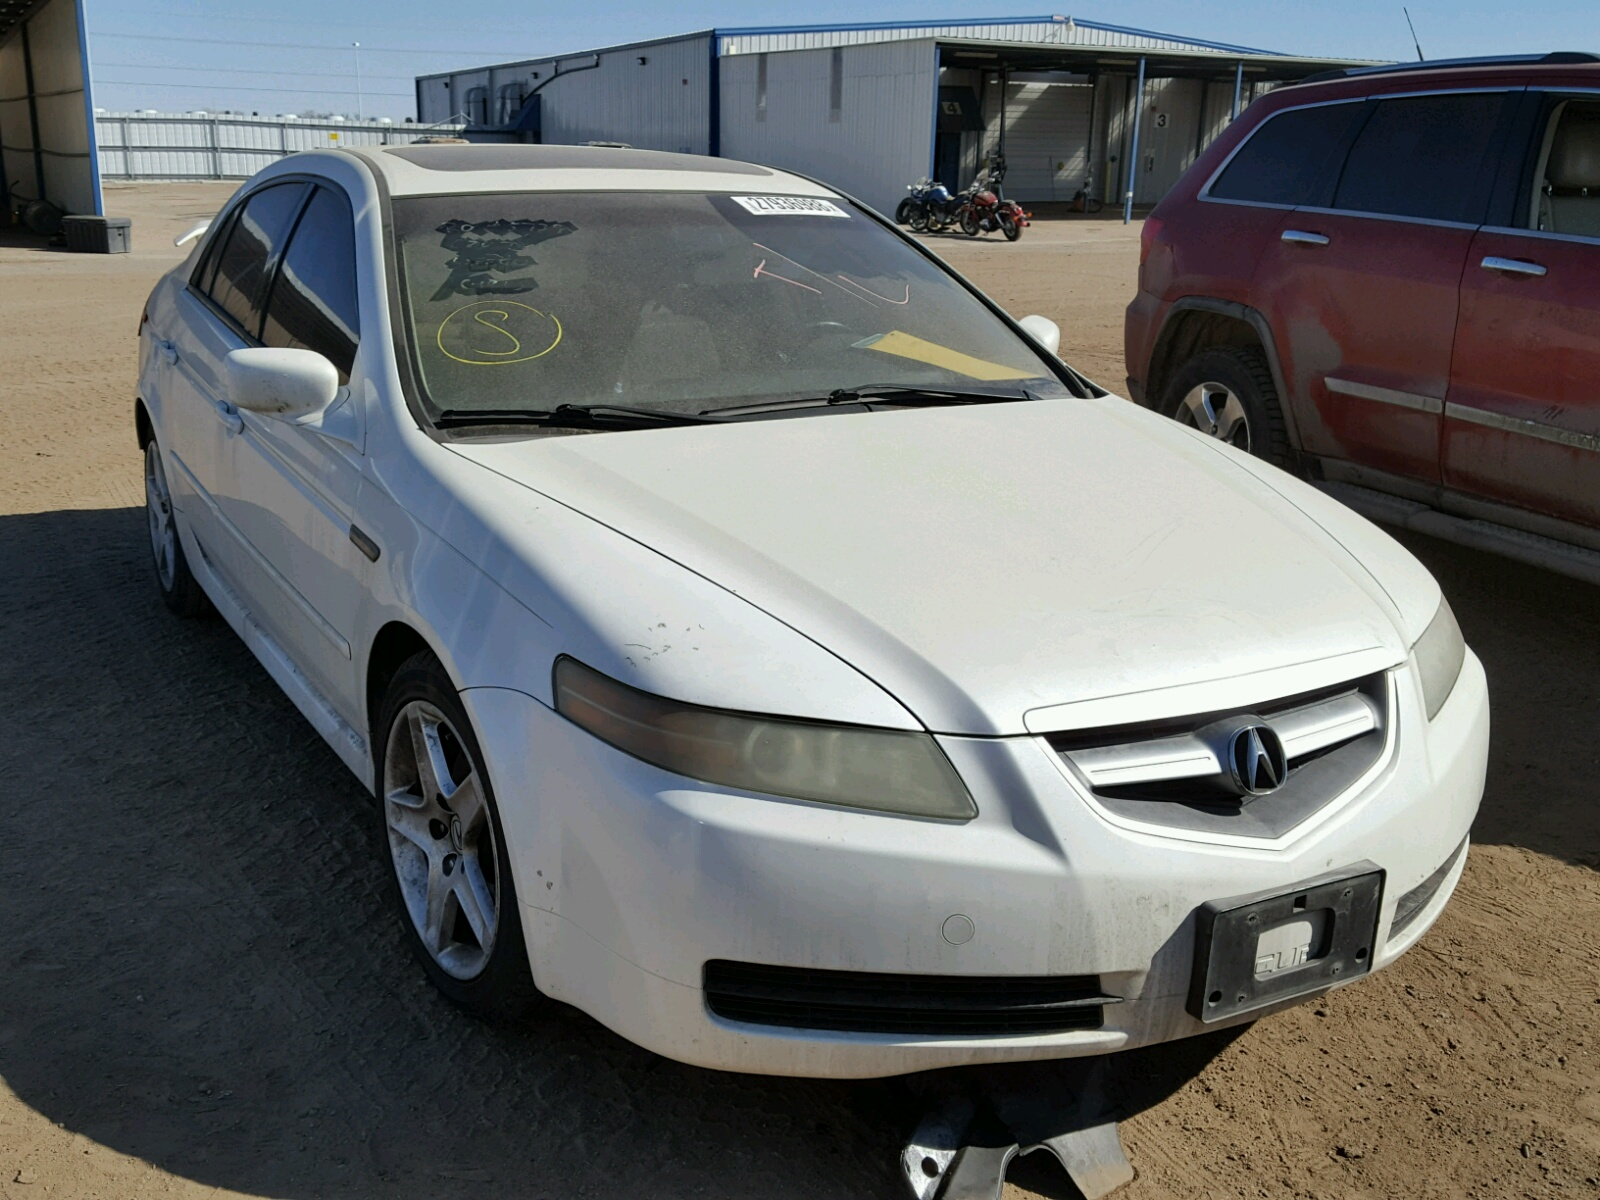 tl rl of photos awesome sale release for acura drivins date cargurus car